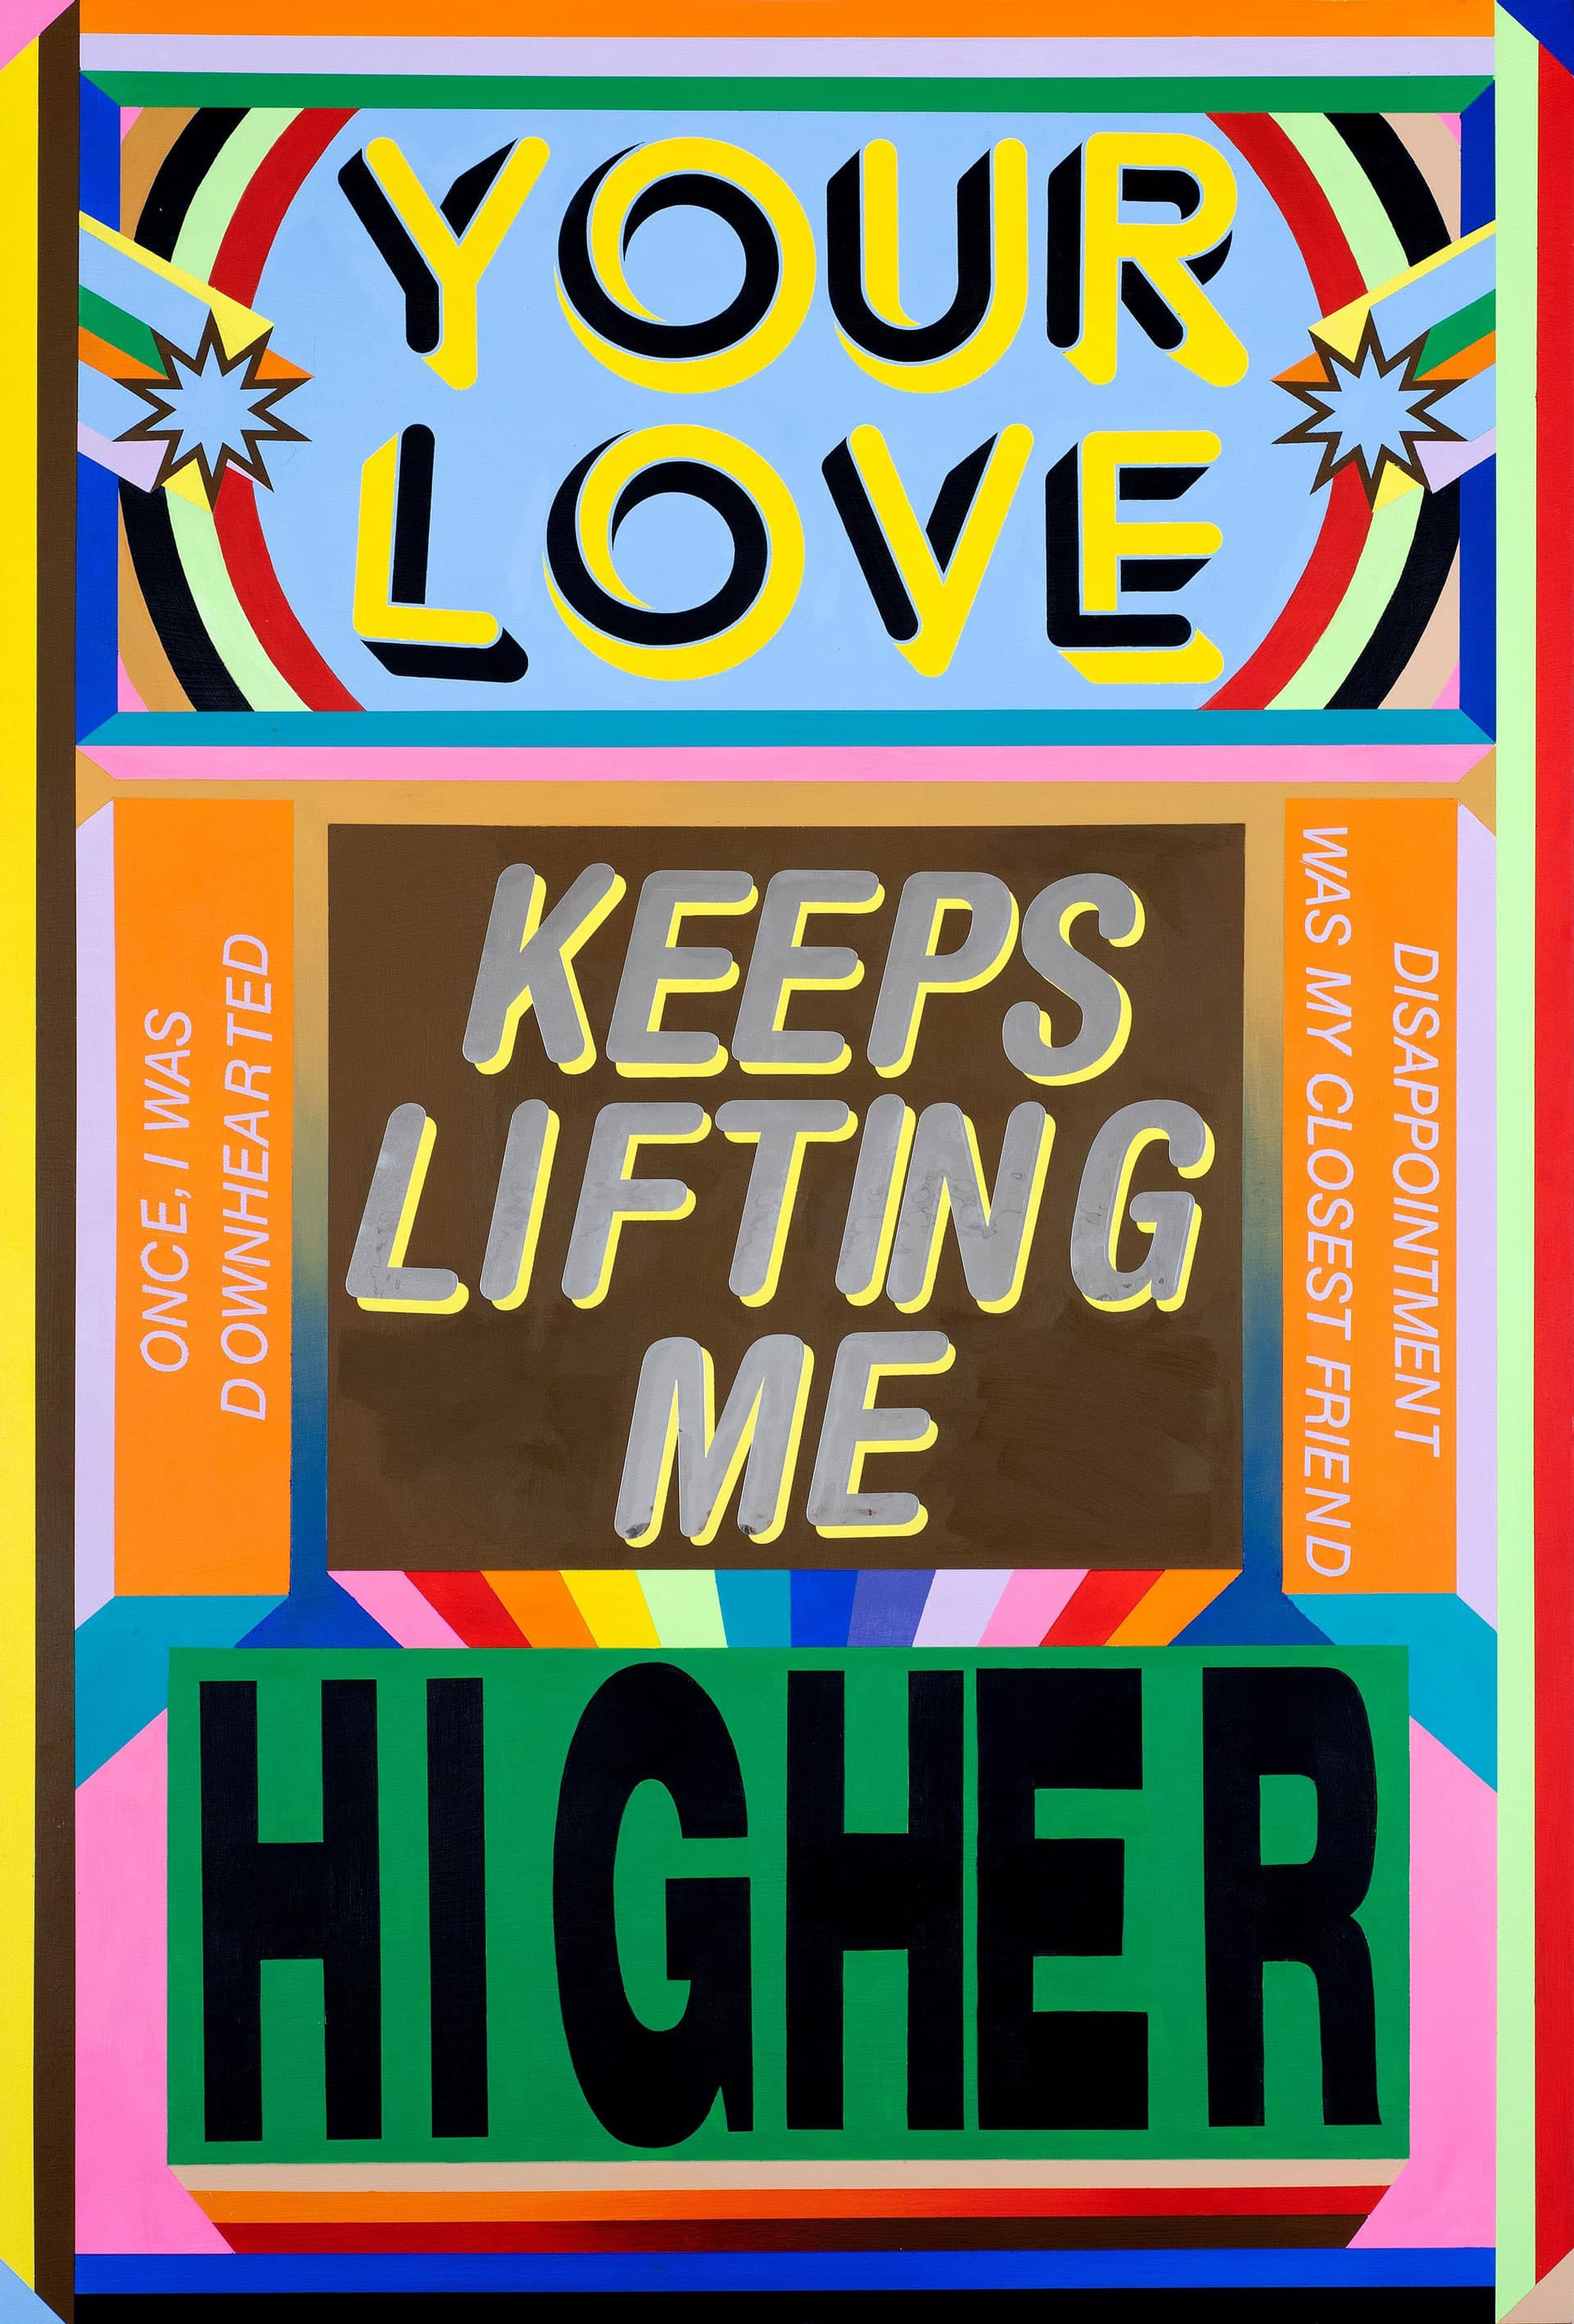 Your Love Keeps Lifting Me Higher, 2020